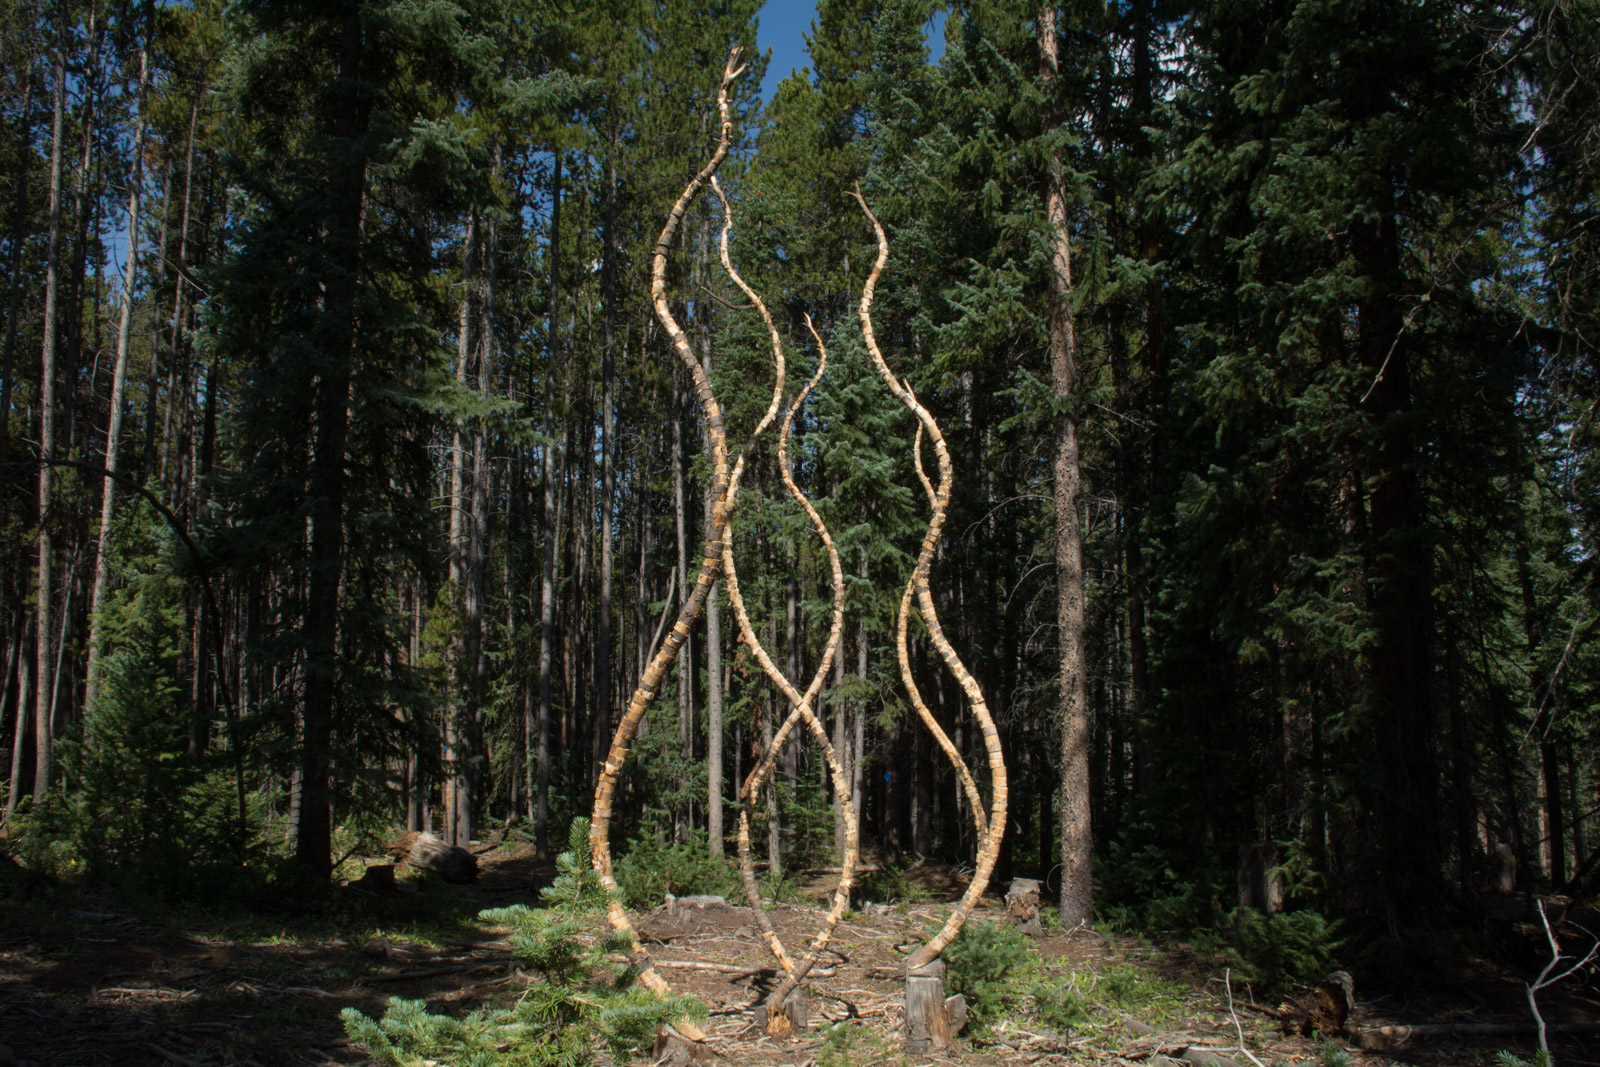 Trail Mix - 2015 Sculpture called Hume's Guillotine built on the Moonstone Trail